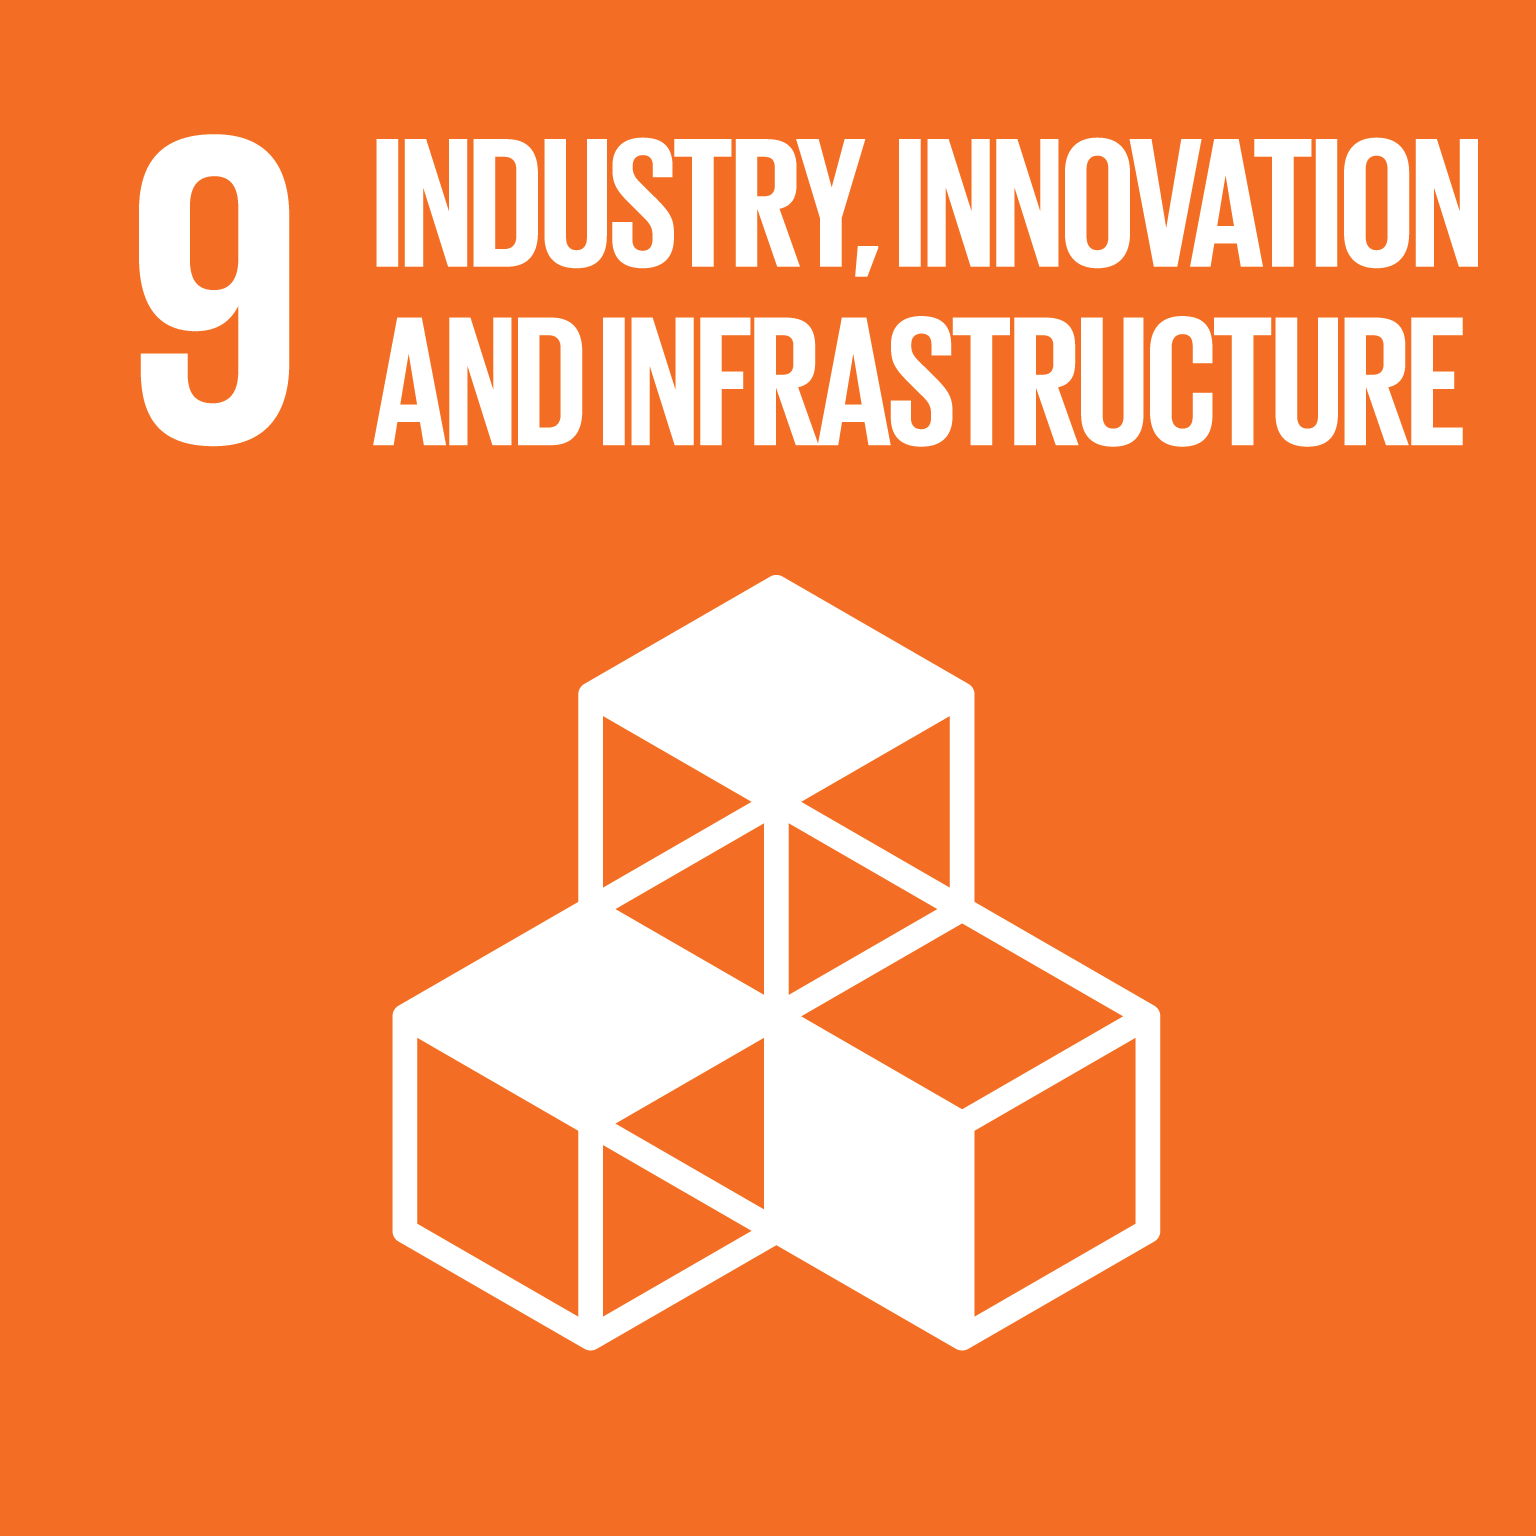 SDG 9: Industry, Innovation and Infrastructure